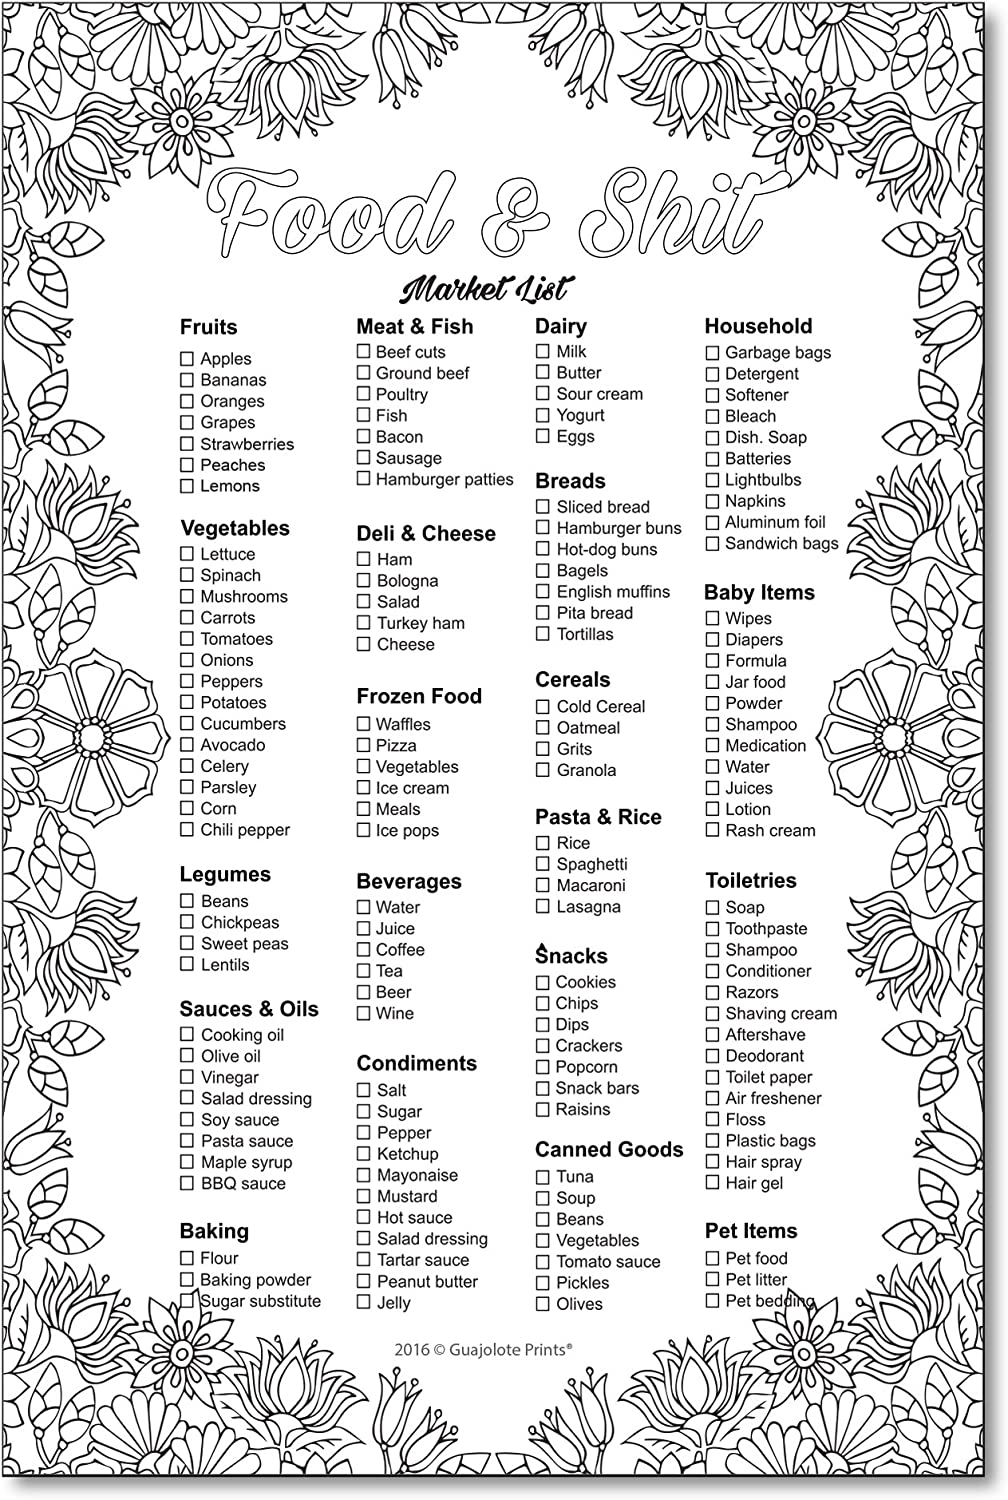 Food and Shit Funny Adult Coloring Magnetic Grocery List - Market List Memo Pad